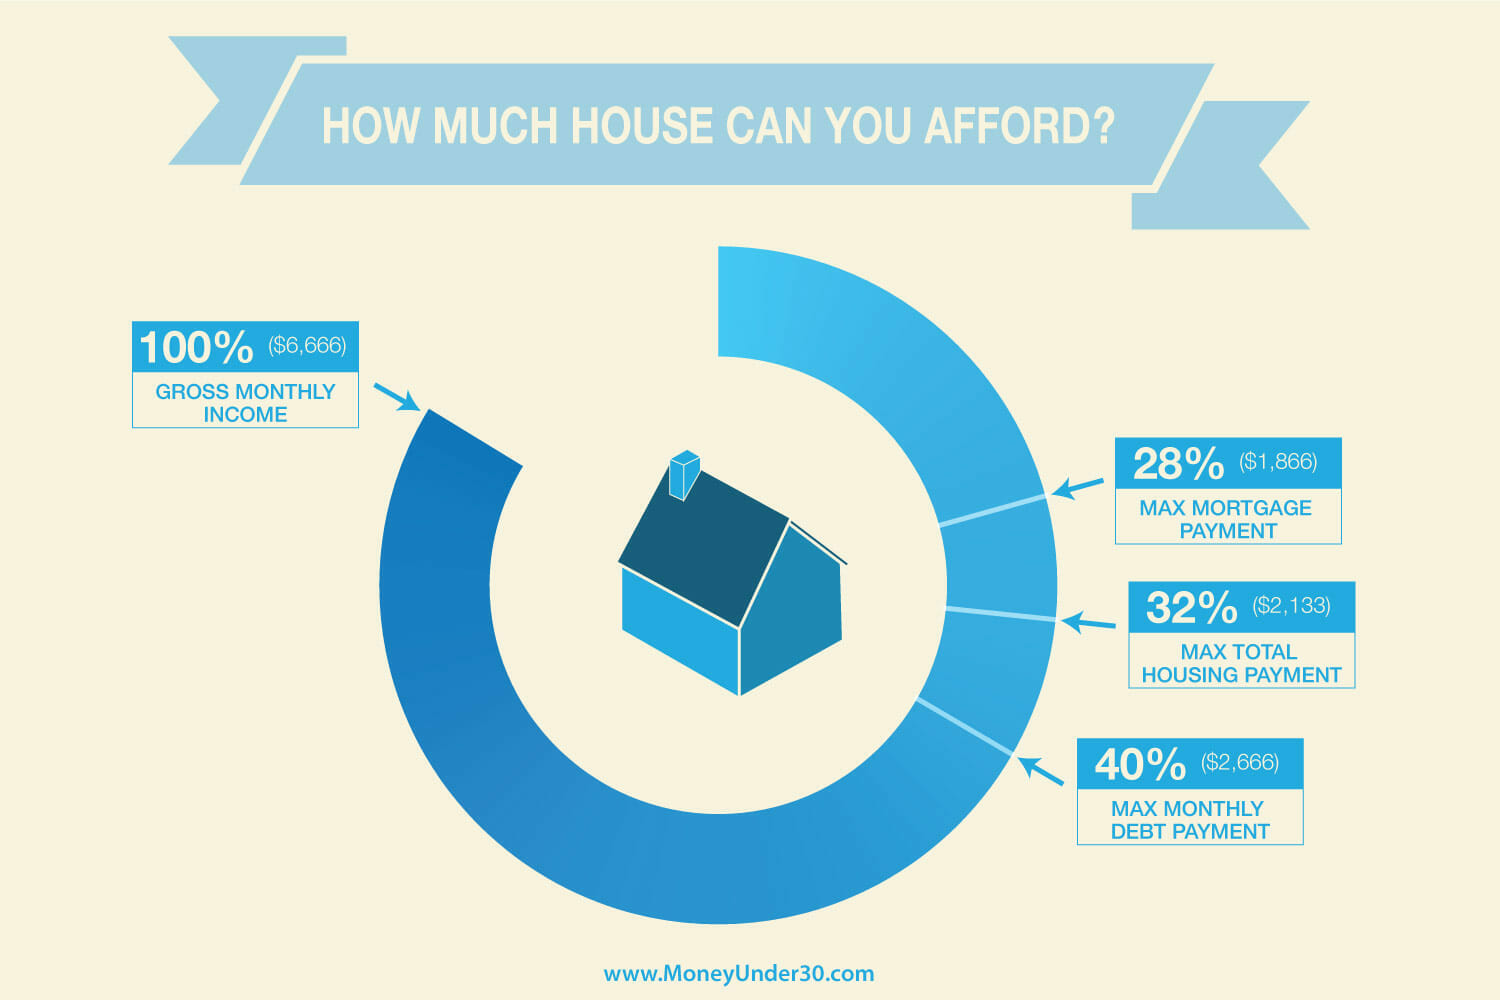 How Much House Can You Afford? - Money Under 30